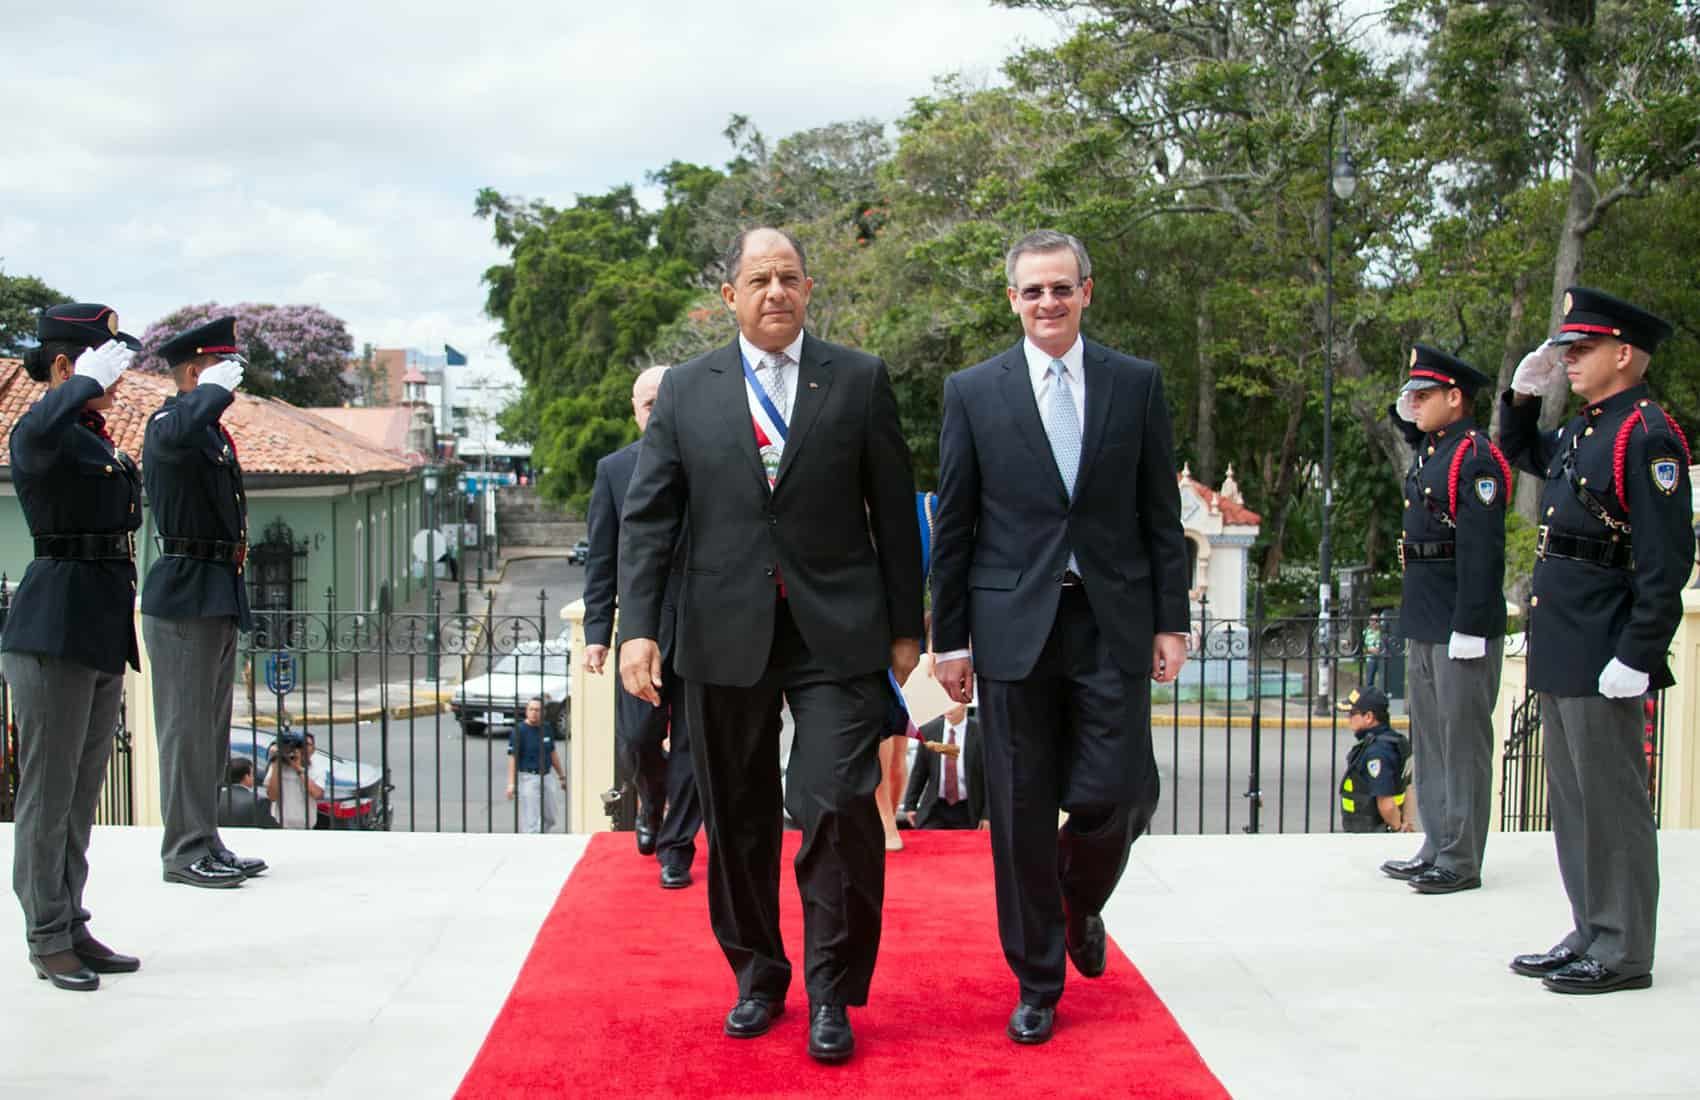 Solís trip to Cuba: President Luis Guillermo Solís and Foreign Minister Manuel González